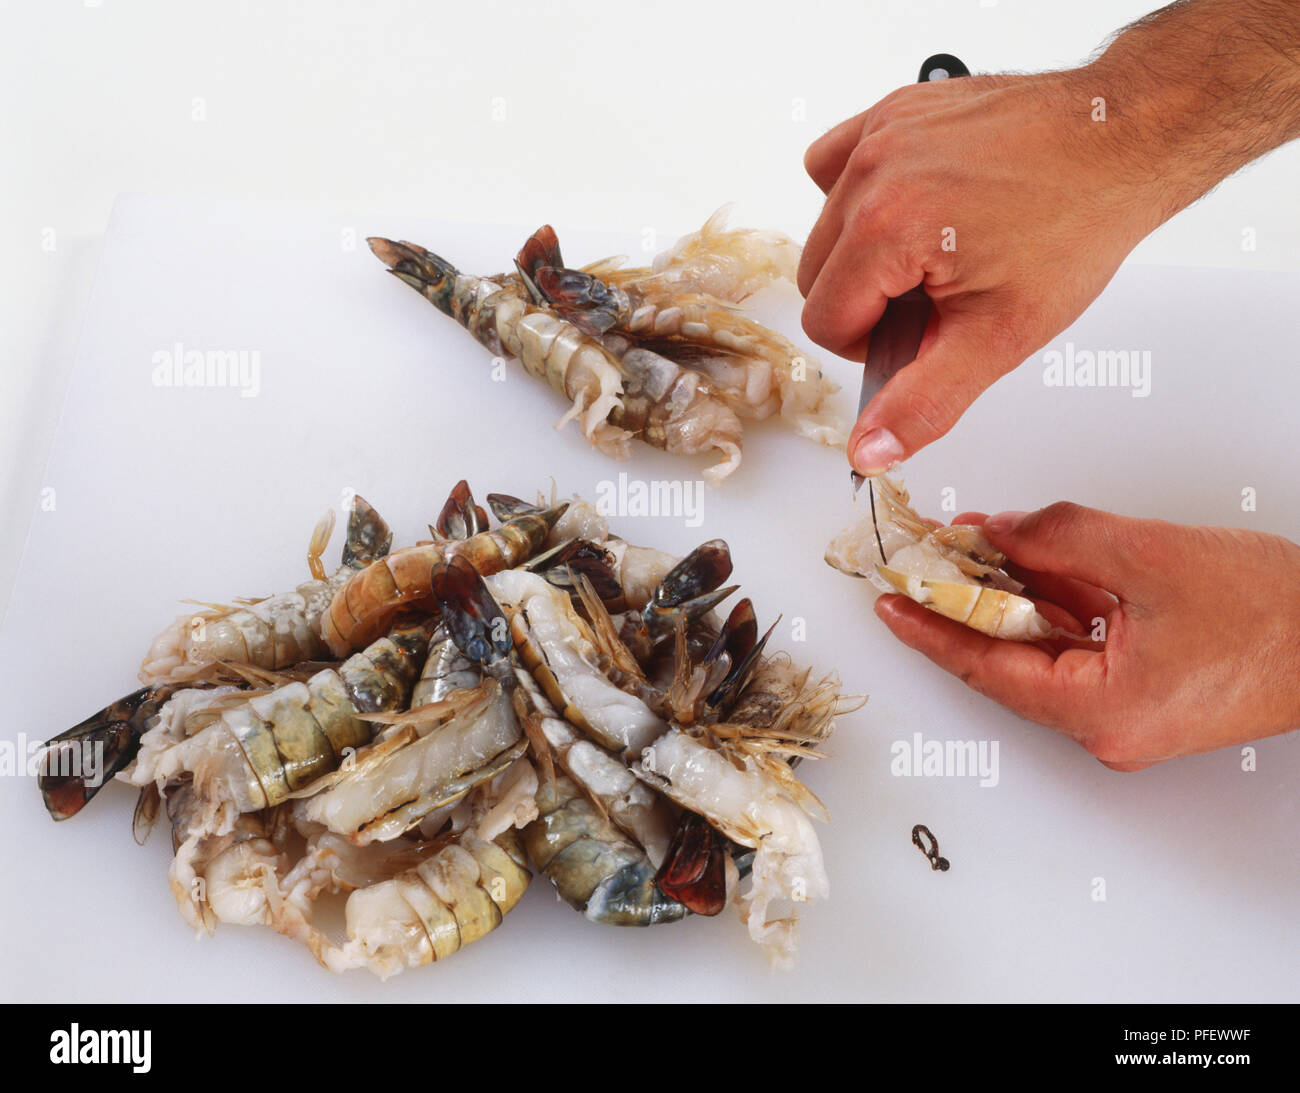 Pile of prawns, one being peeled using a knife - Stock Image